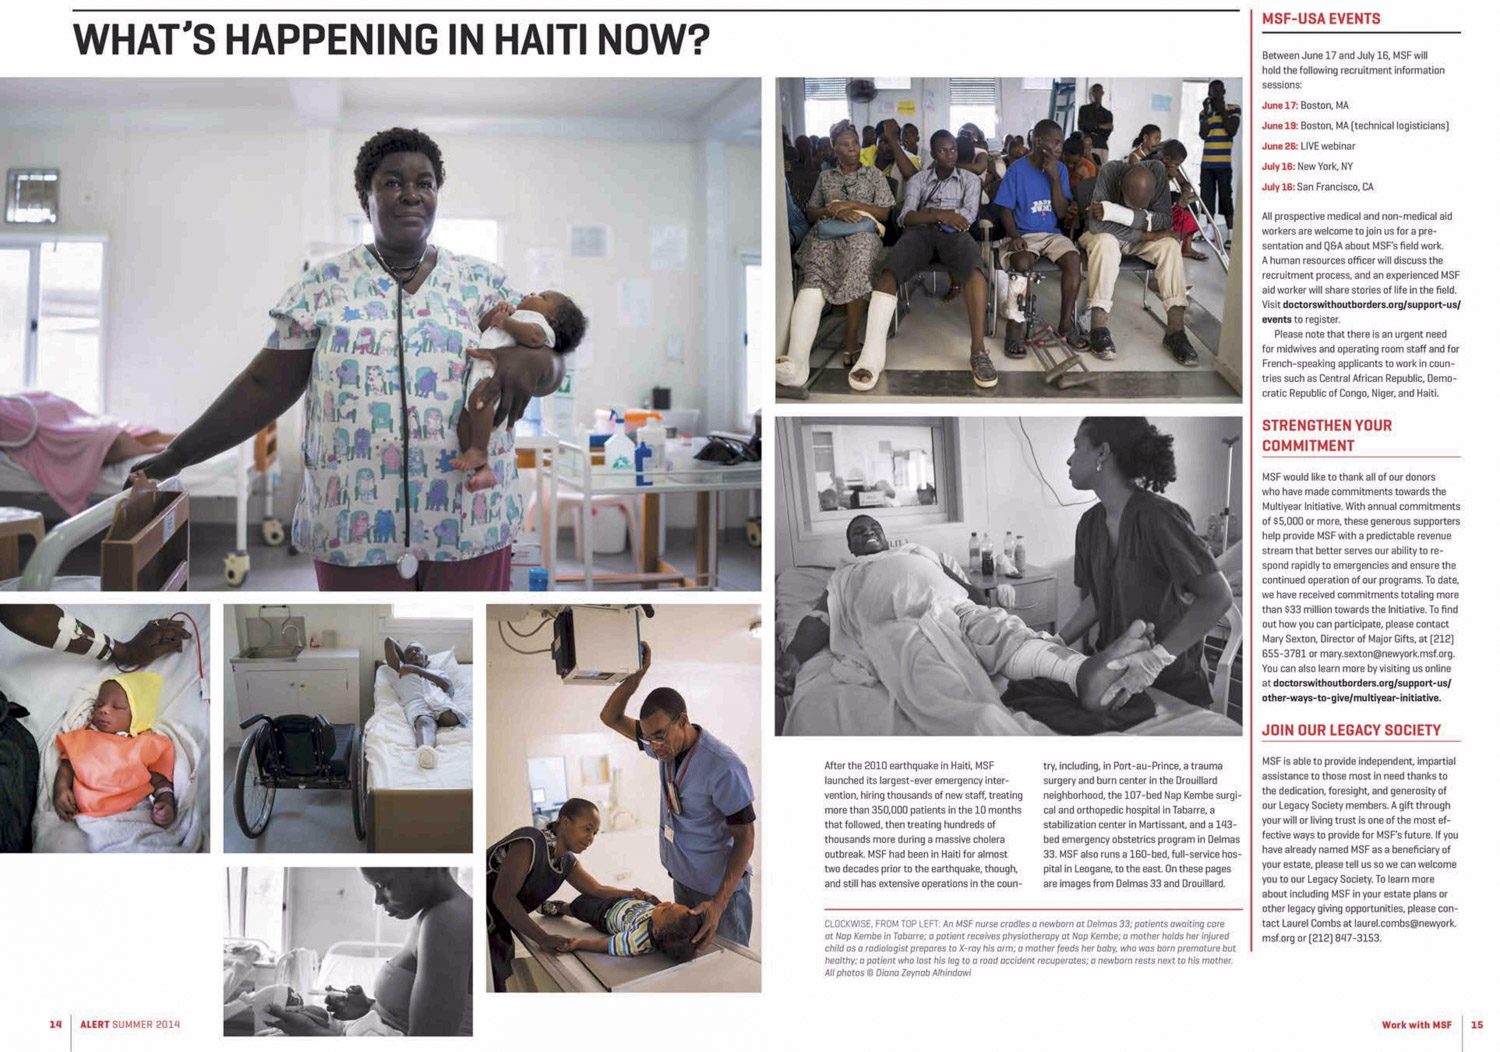 What's happening in Haiti now | Doctors Without Borders / Medicins Sans Frontieres, Jun 2014, pages 14-15